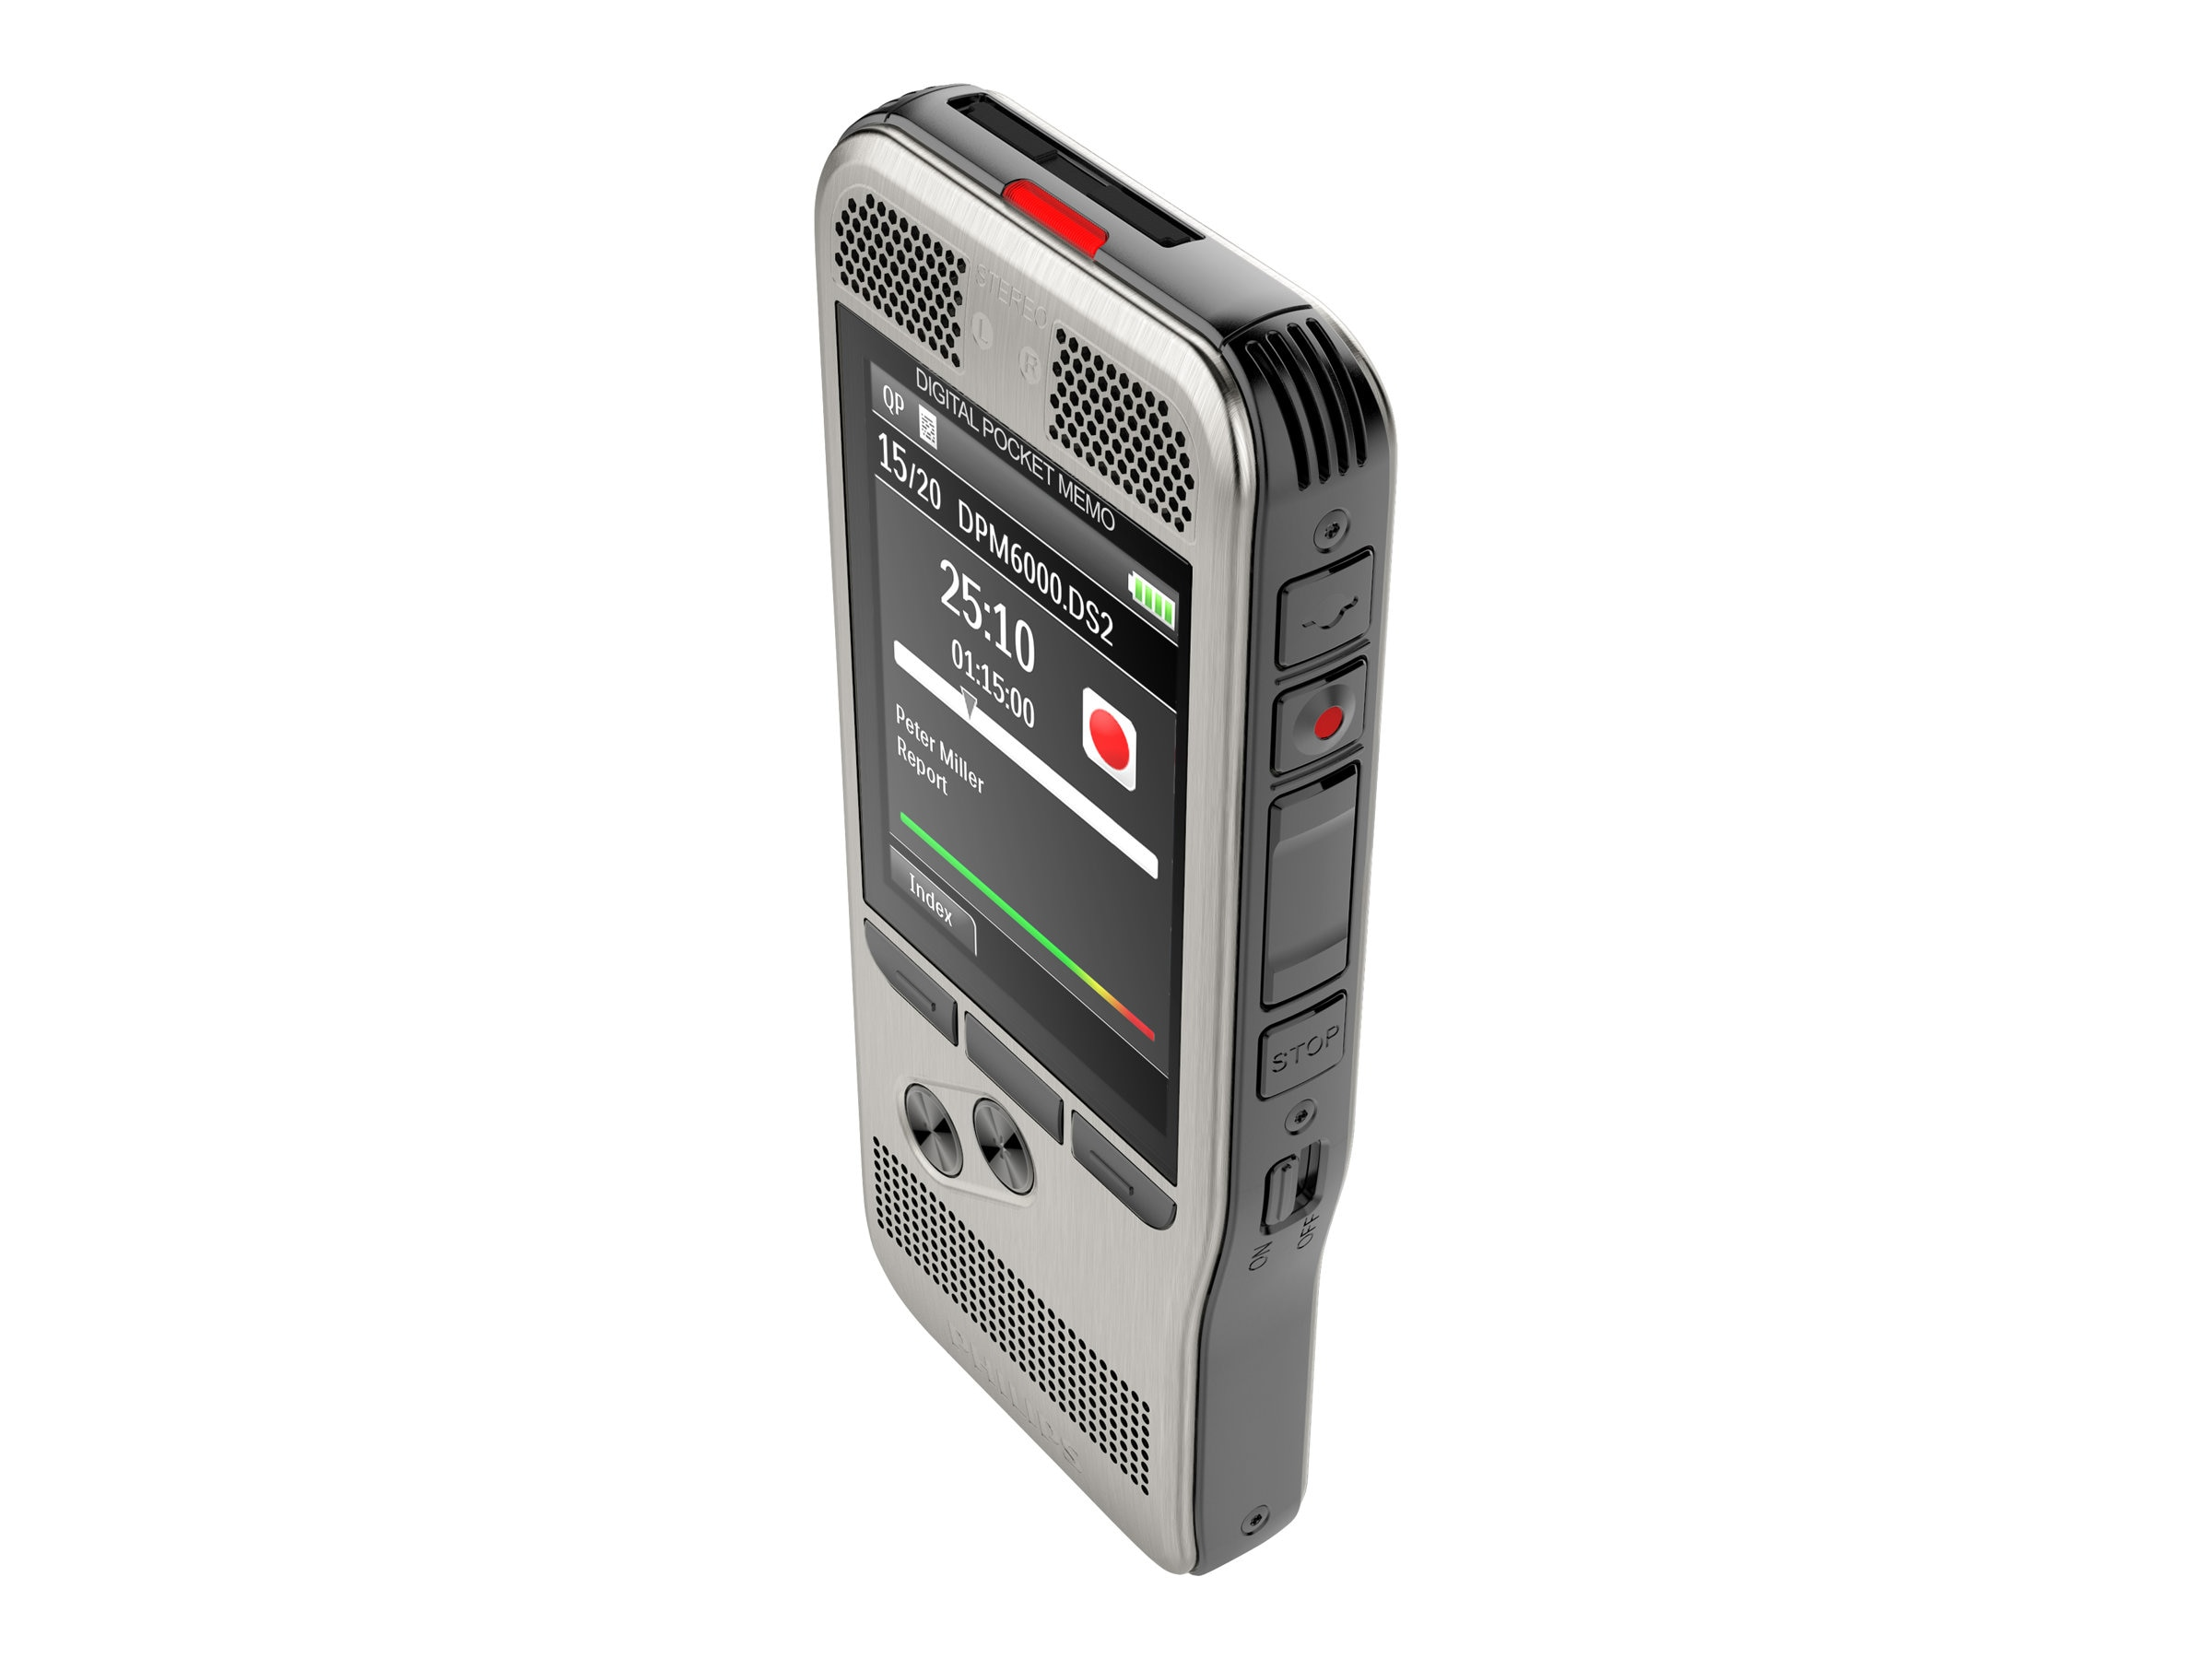 Philips Digital Pocket Memo Recorder